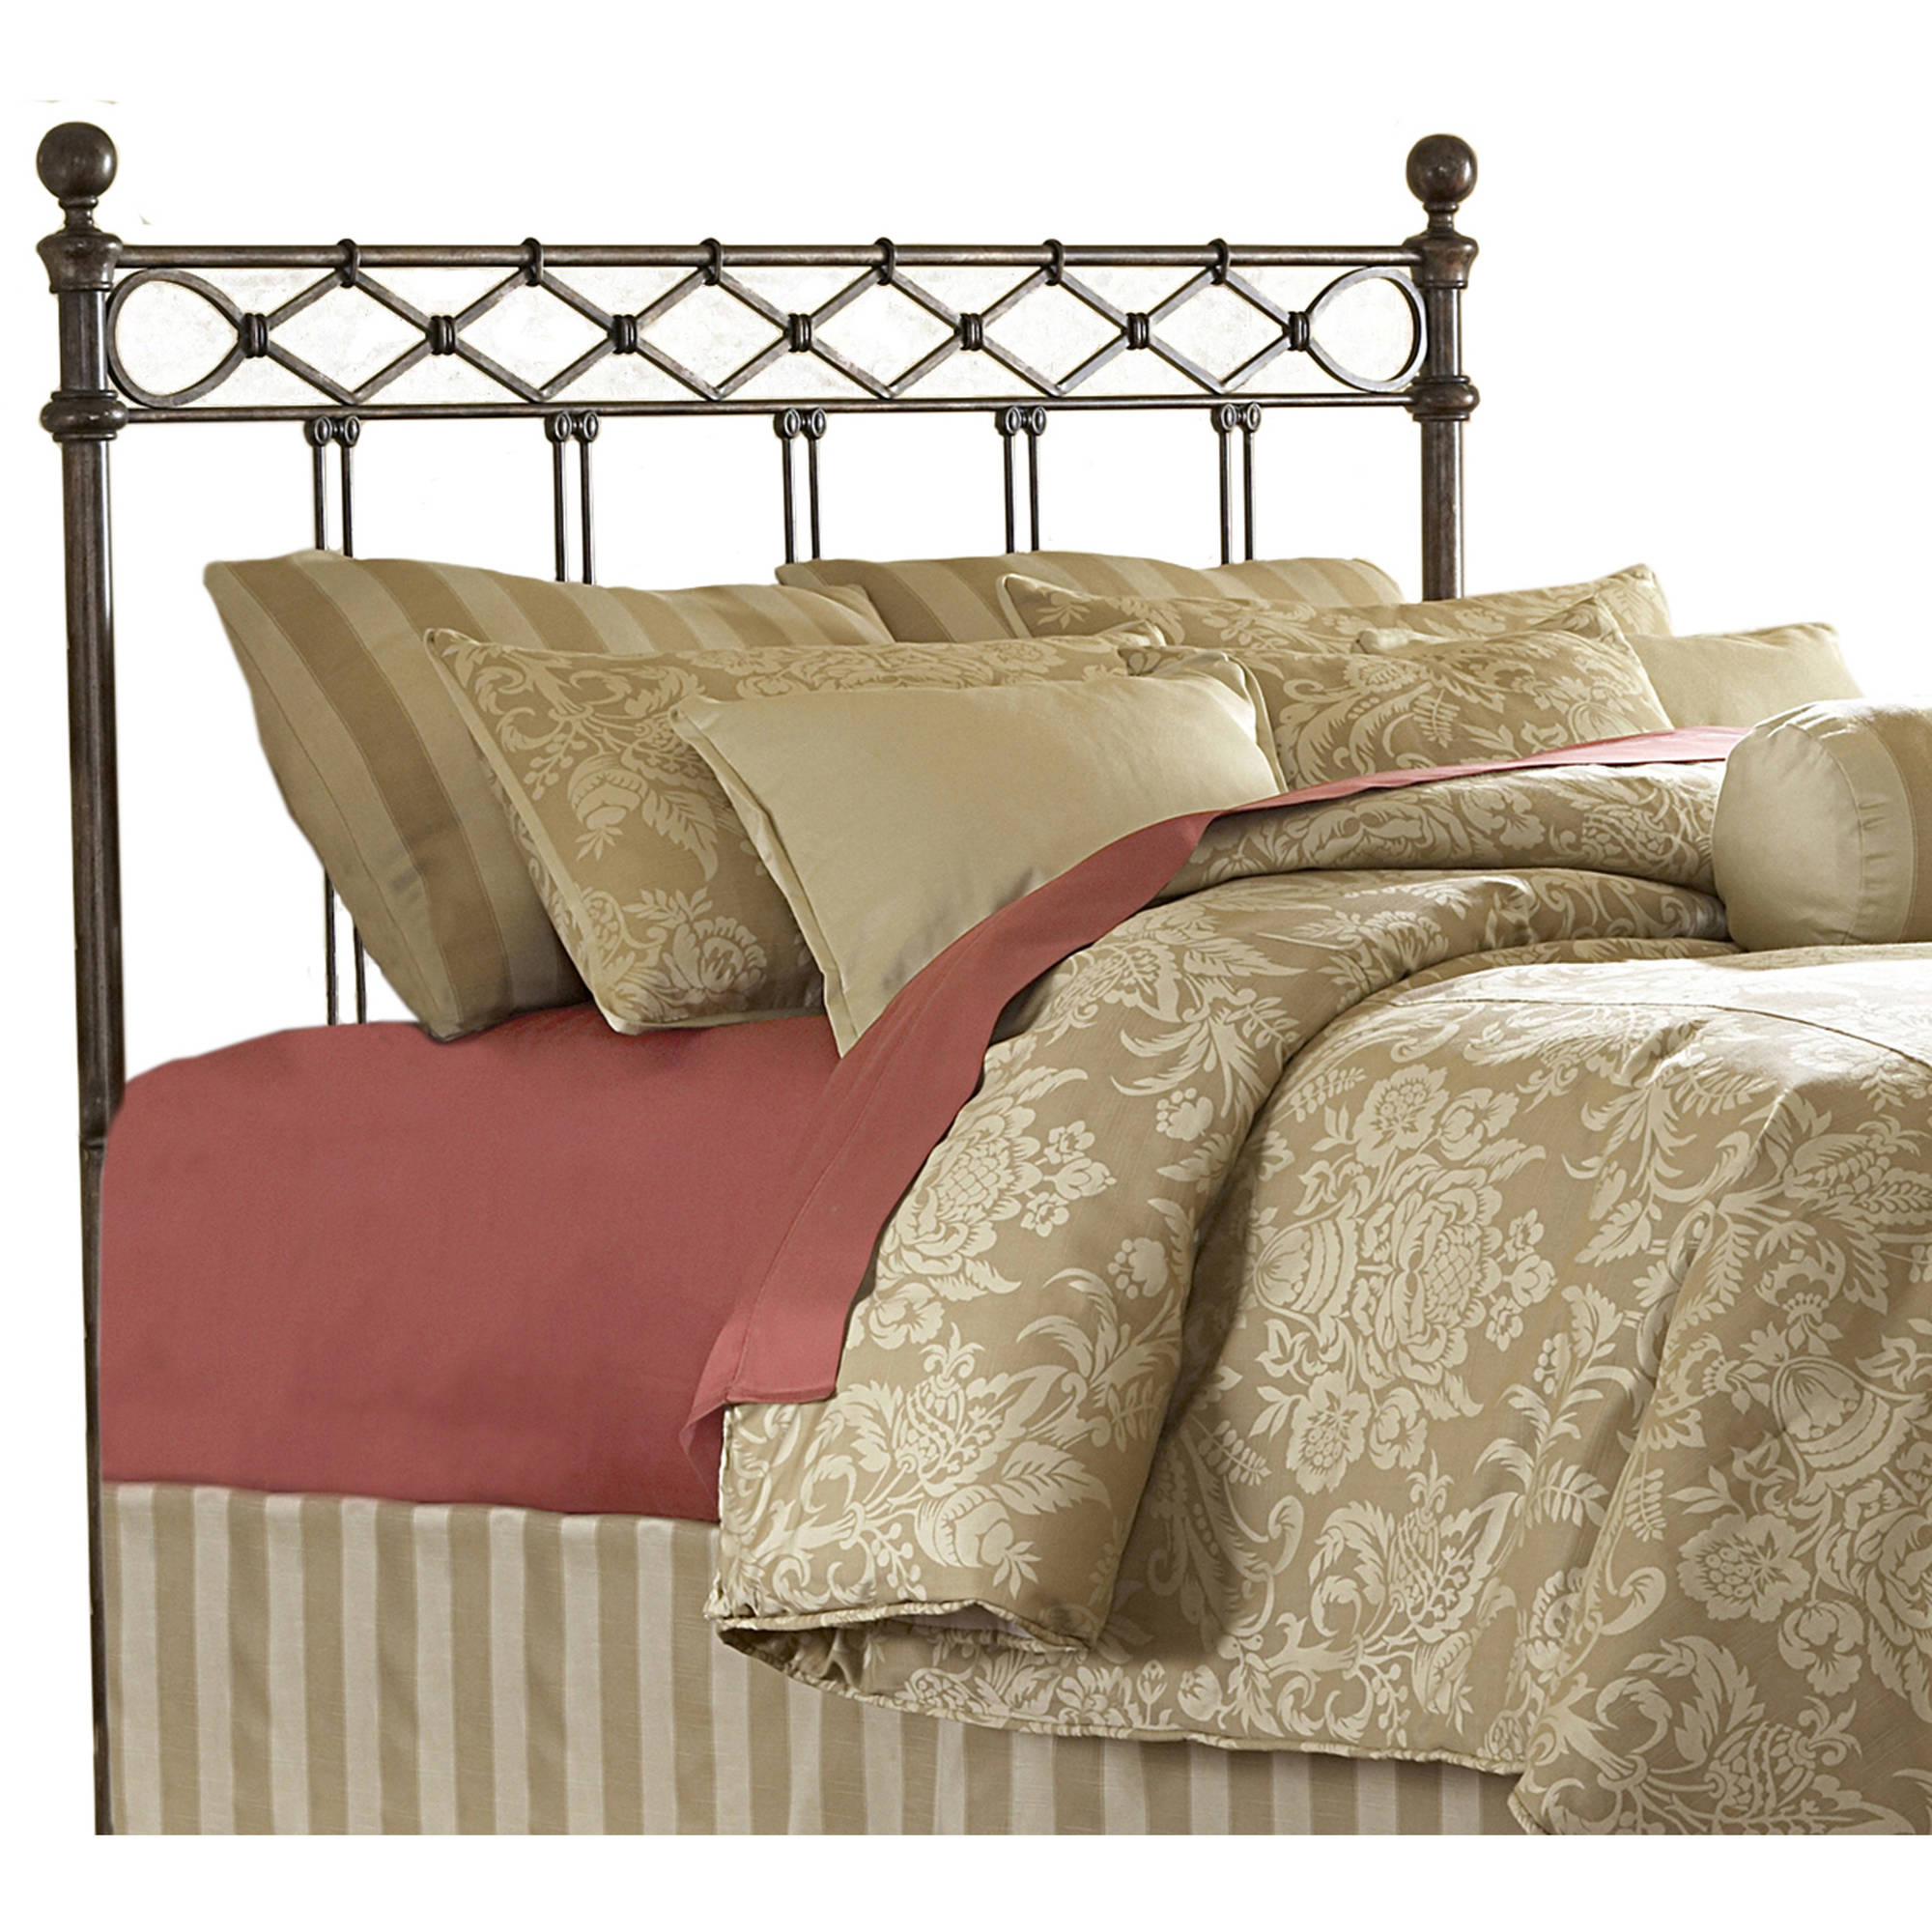 bed allen moss wesley abode headboard by iron abington finish wesleyallen frame copper humble with textured